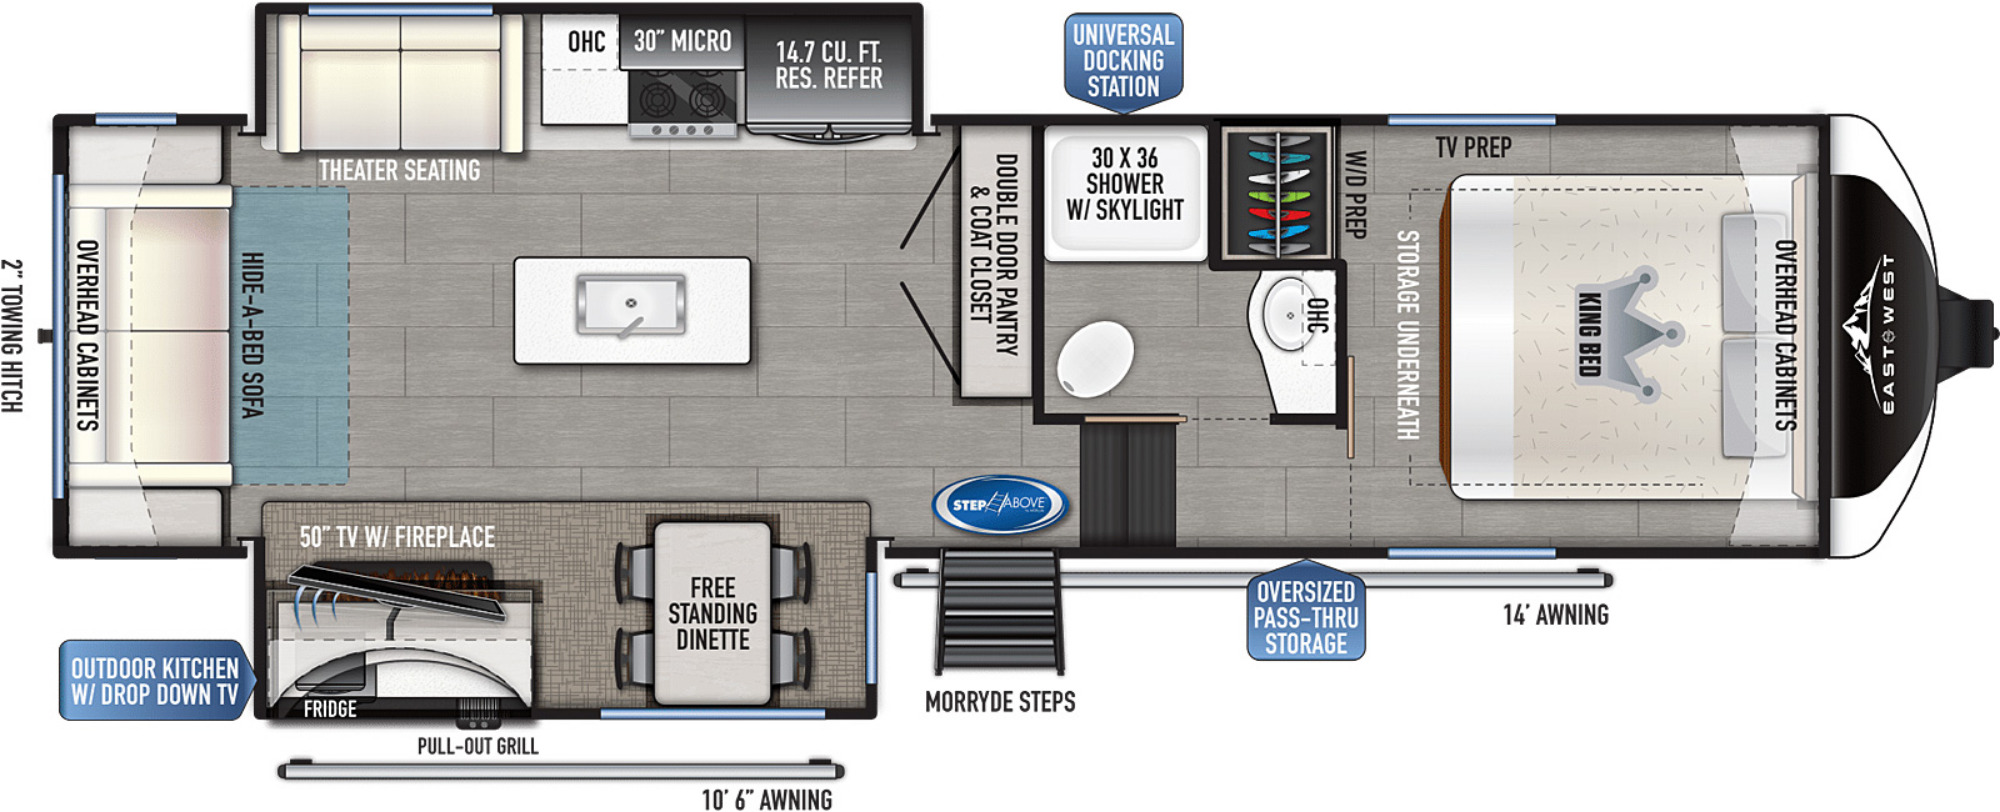 View Floor Plan for 2022 EAST TO WEST TANDARA 286RL-OK